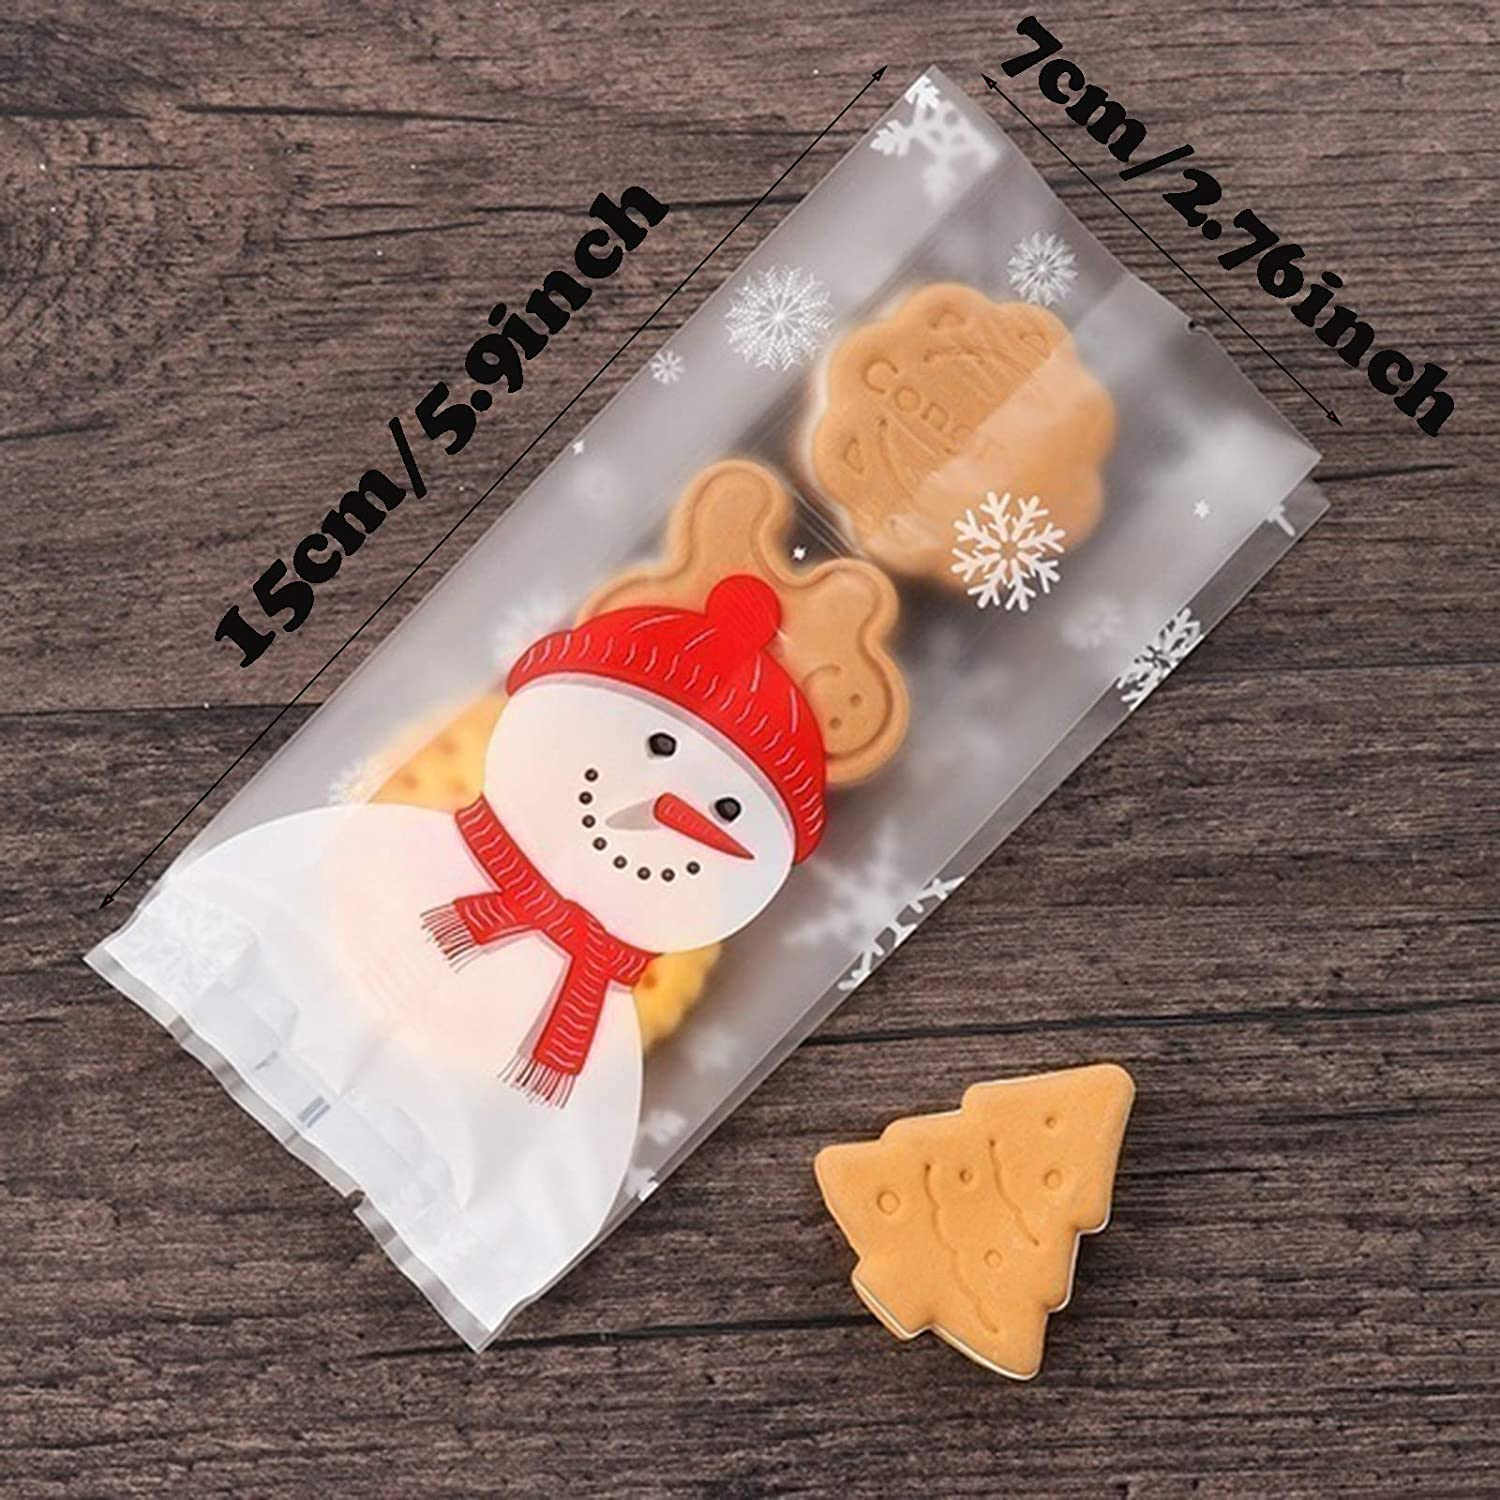 DAZAIGE 100 Pieces Christmas Cookies Bags Cute Christmas Snowman Treat Bag Plastic Gift Wrapping for Storing Cookie Chocolate Cake Bakery Candy Biscuit Dessert Christmas Party New Year Baking Supplies